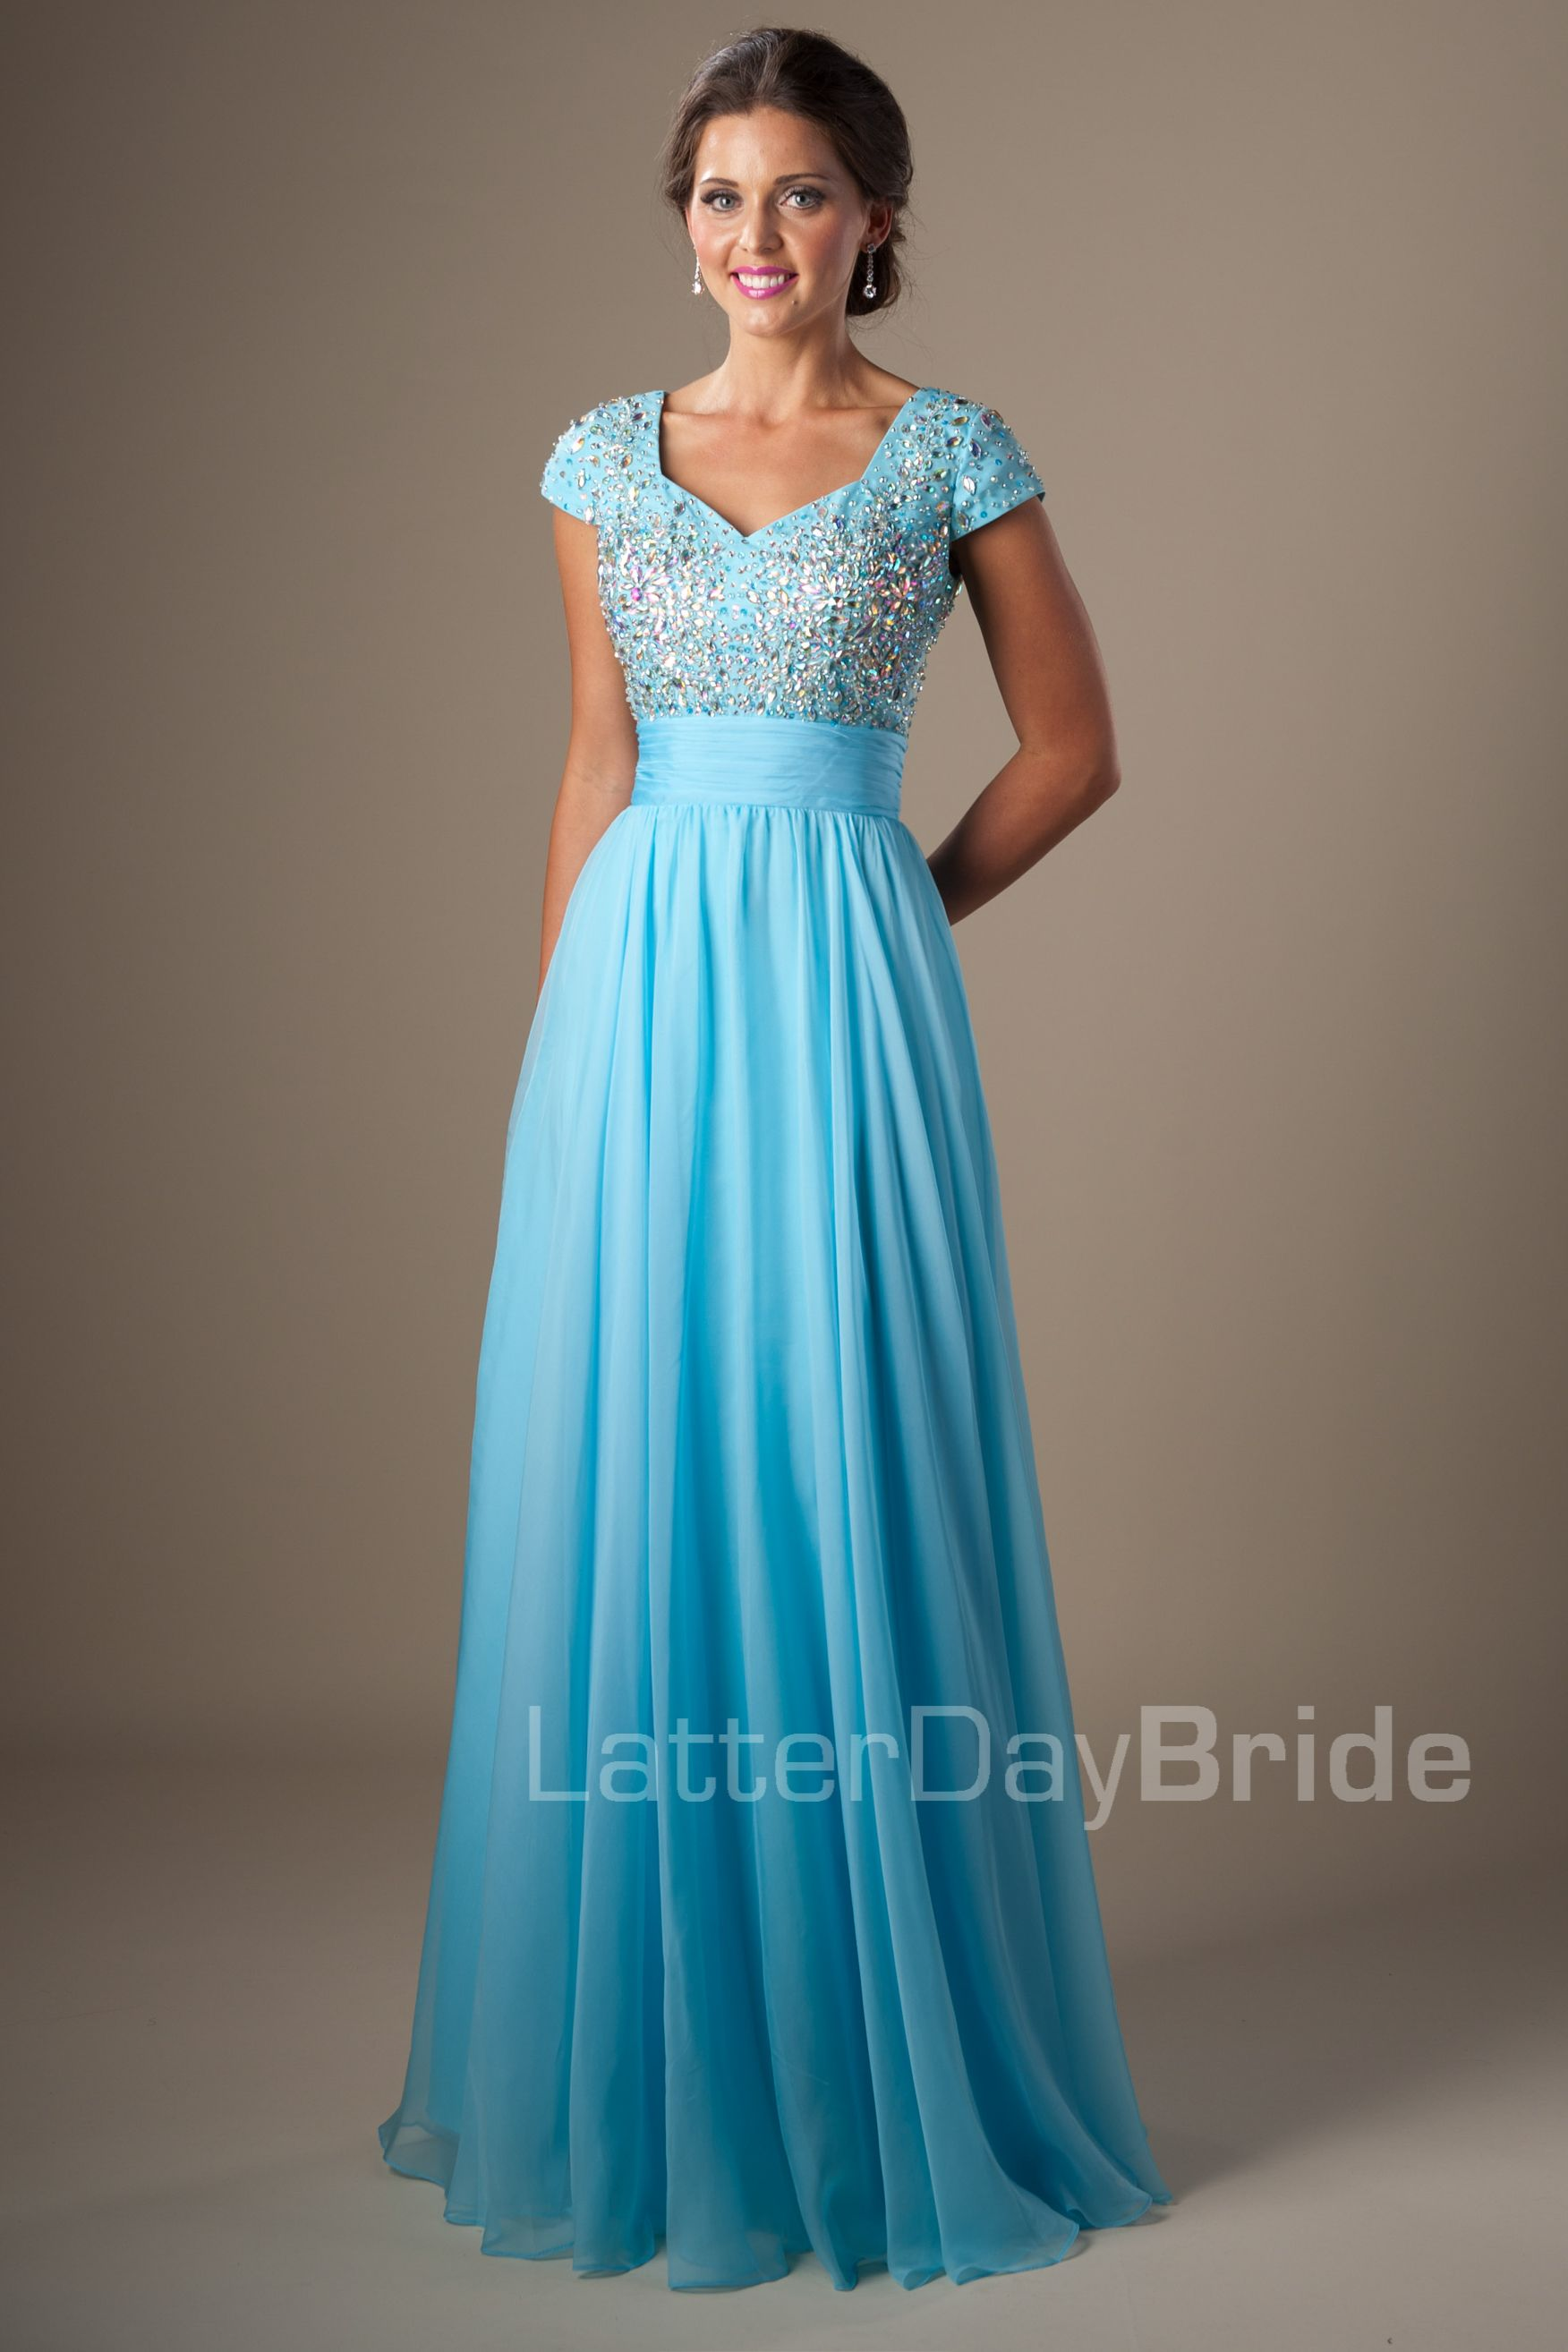 Modest Prom Dresses On Pinterest Modest Formal Dresses